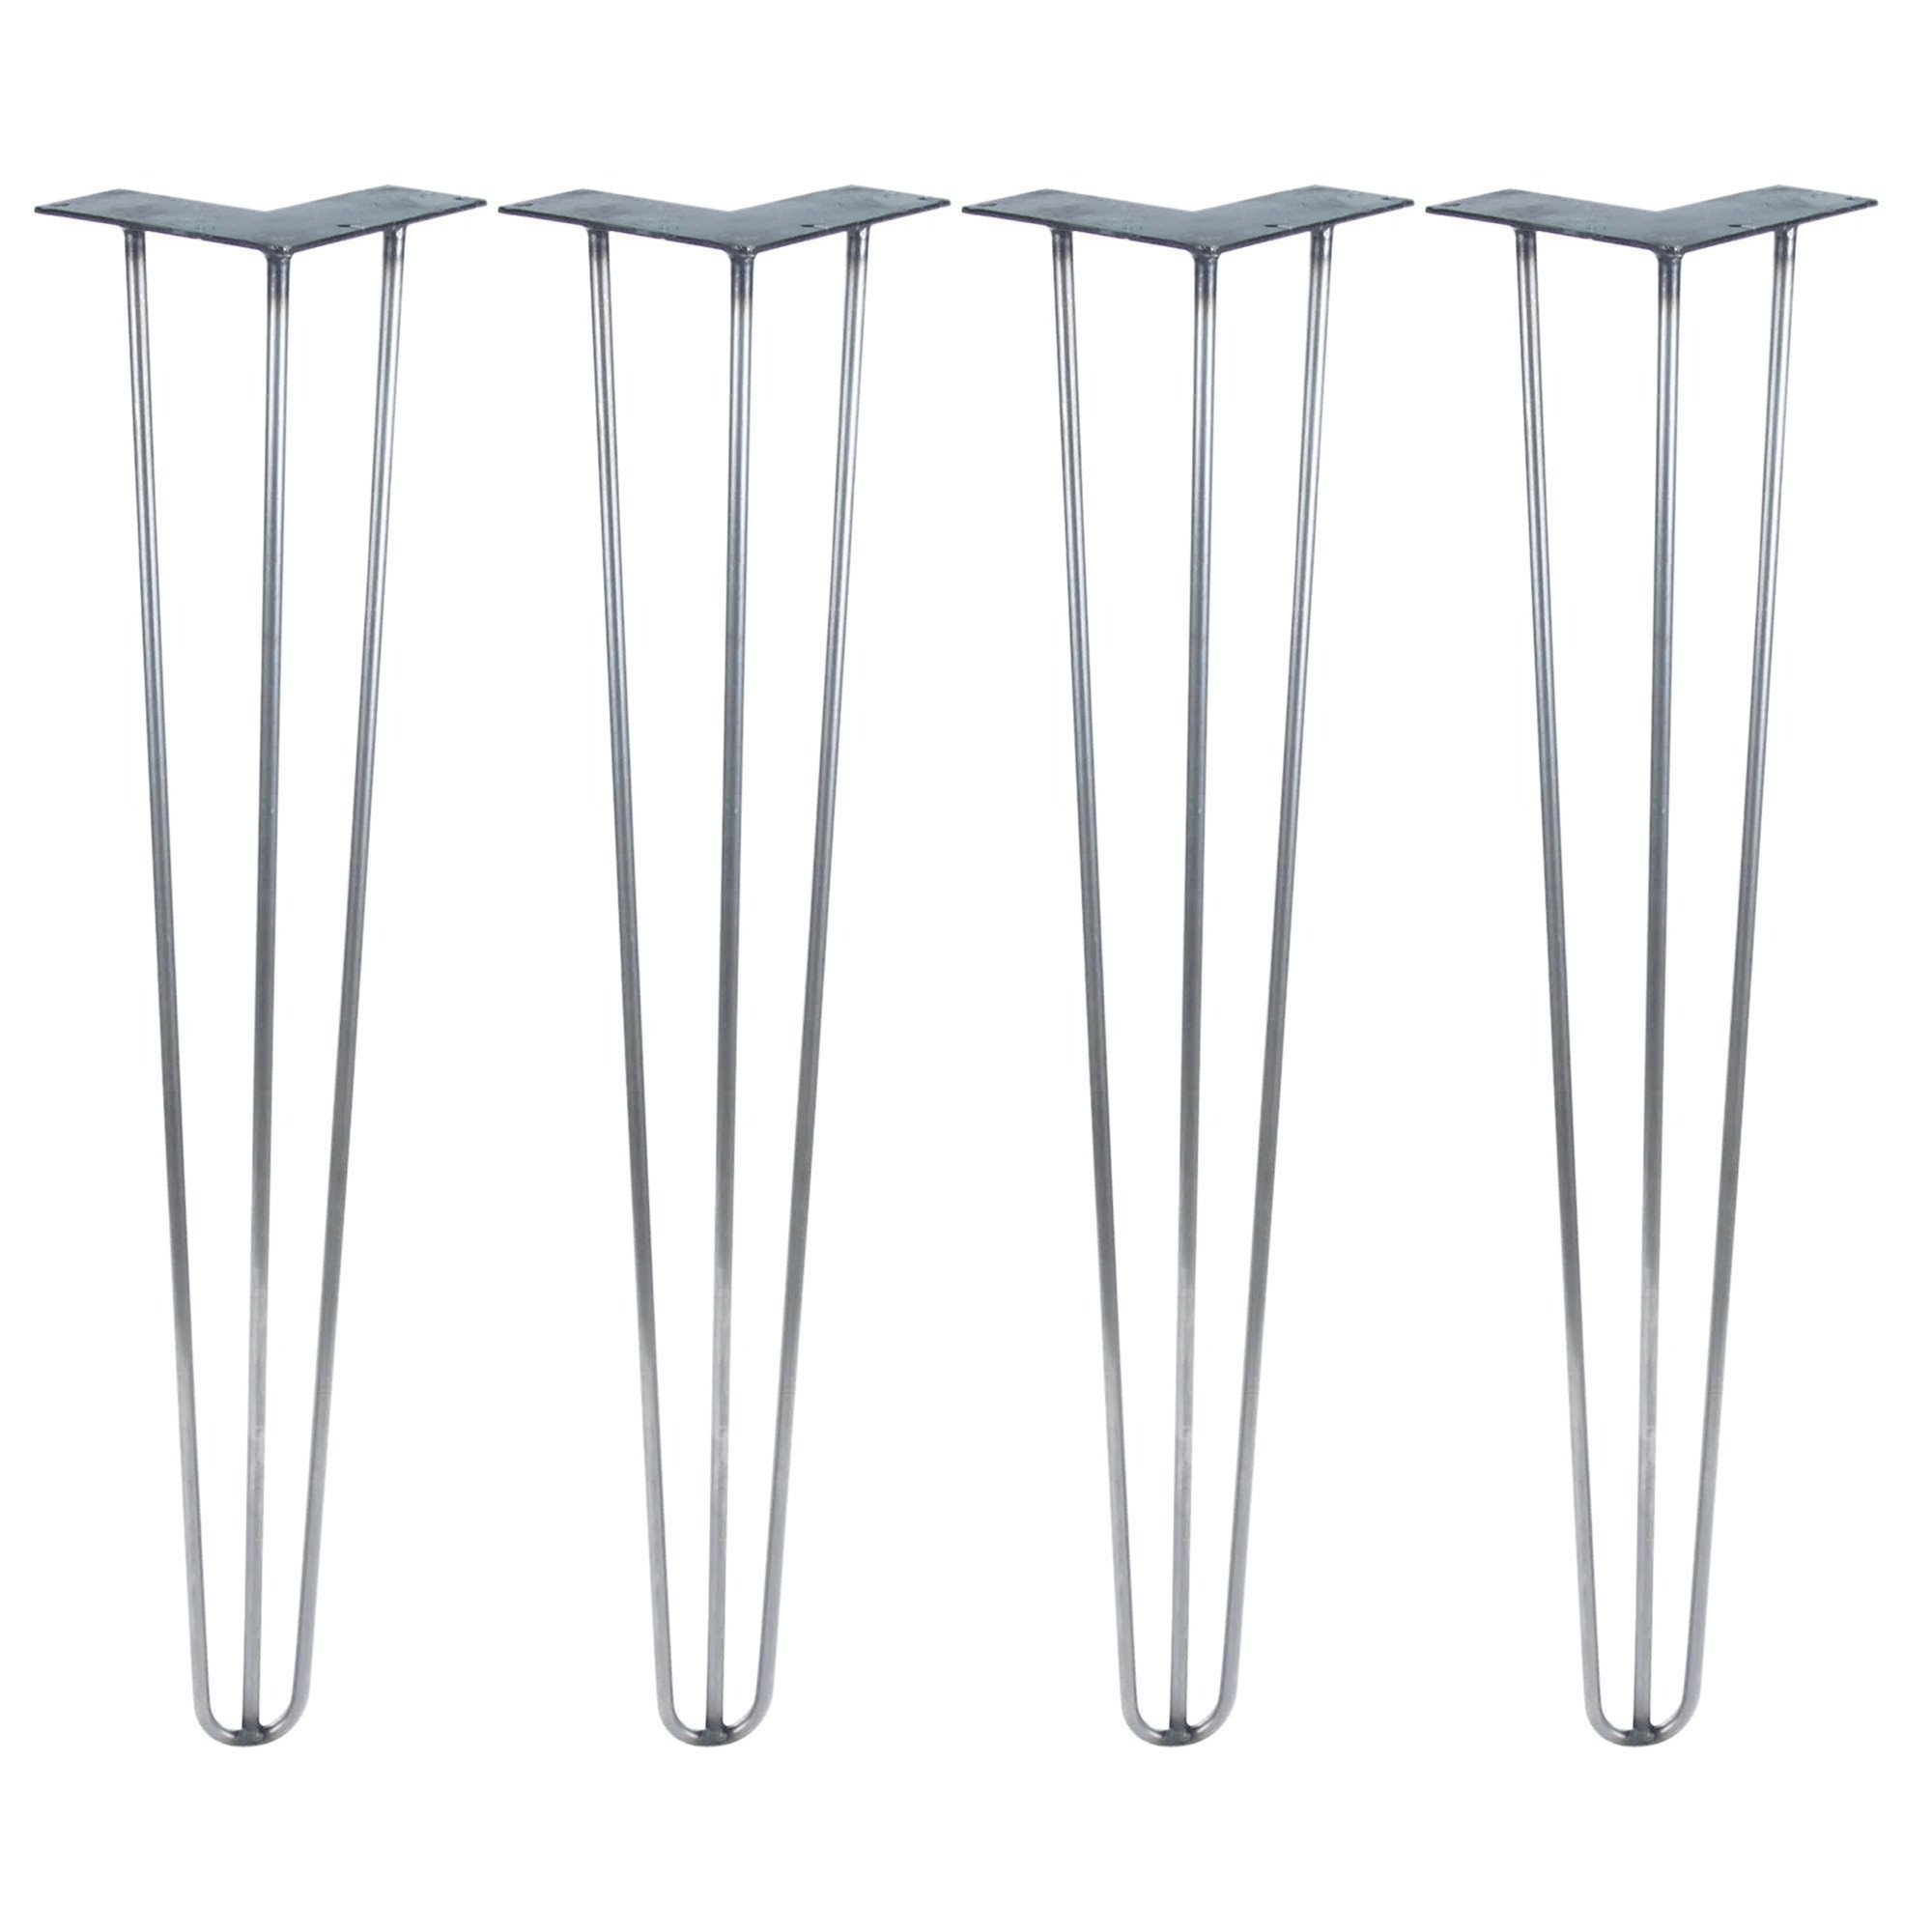 Hairpin Legs Set of 4 - Cold Rolled Steel - Raw and Color Available - Made in The USA (36'' Tall, 1/2'' Diameter - Raw Steel- Shipped as Set of 4 Legs)